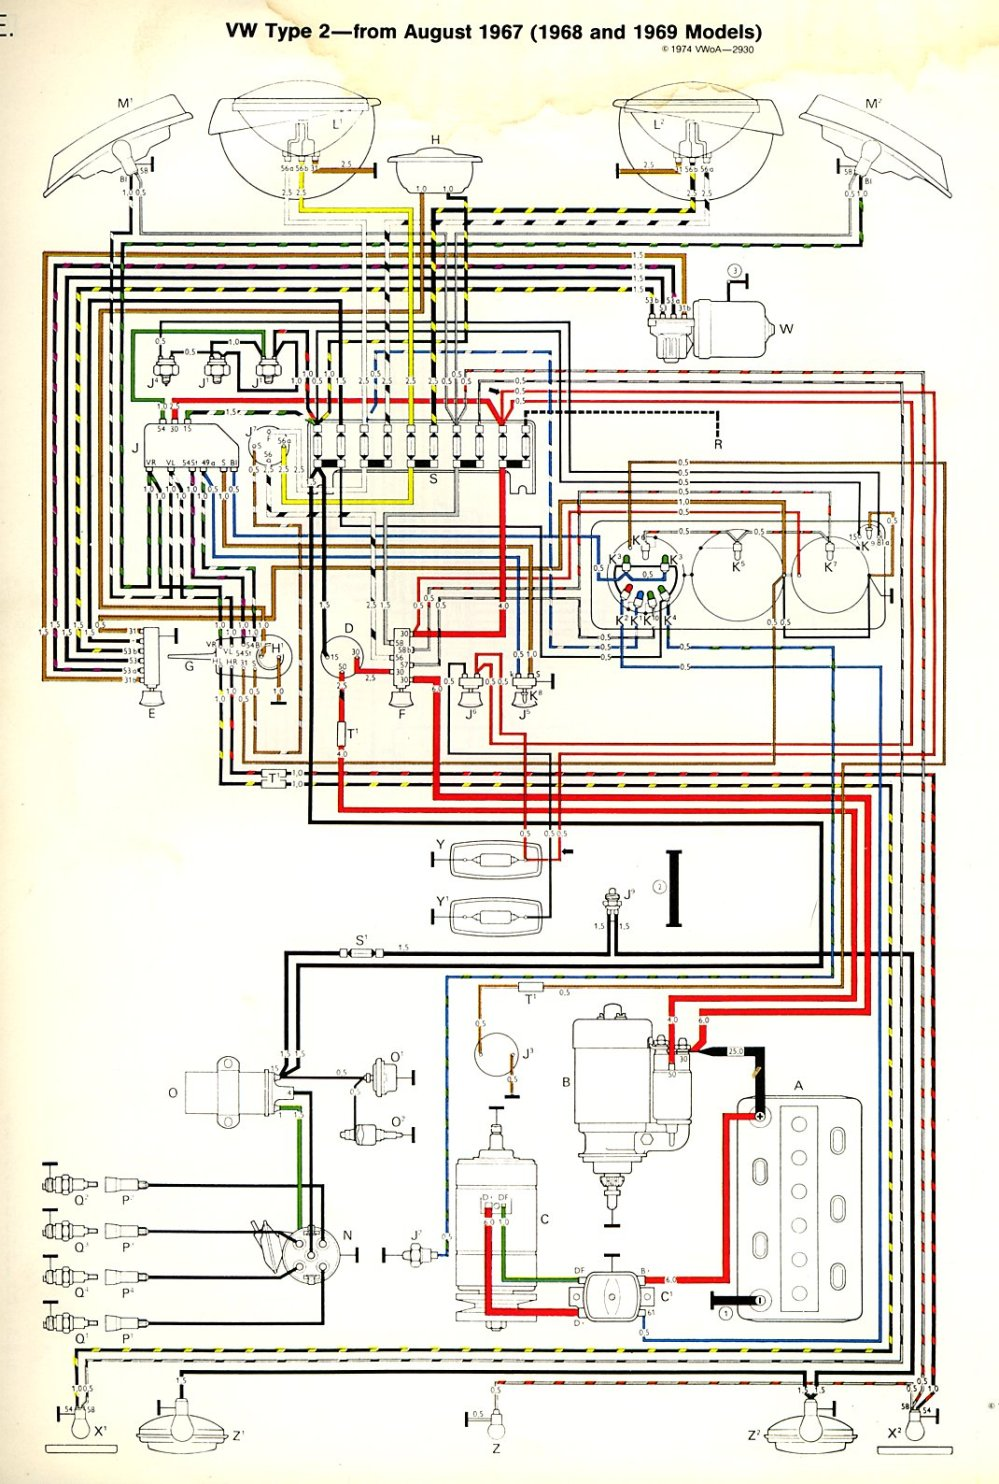 medium resolution of 1972 vw fuse diagram wiring diagram1972 vw fuse diagram